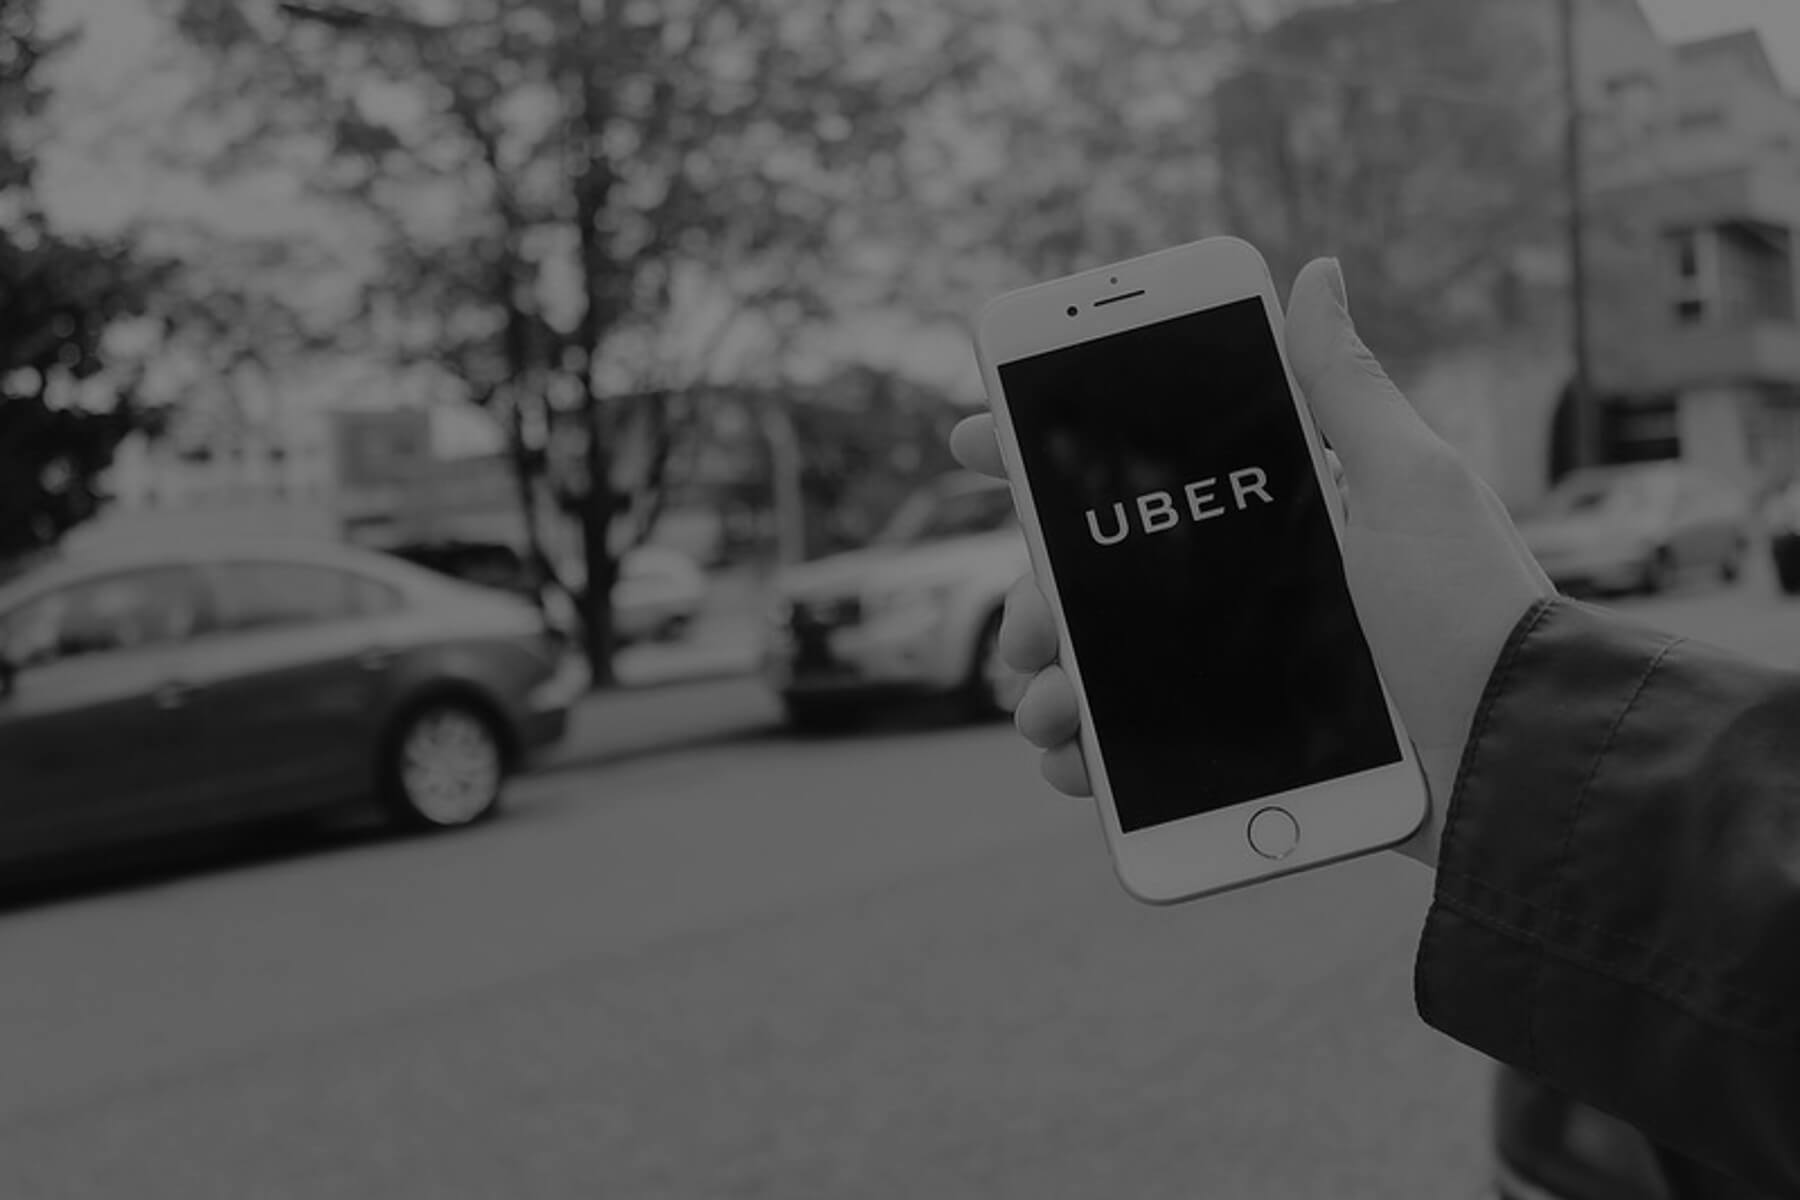 Robert Siciliano on rideshare assaults and other related crimes